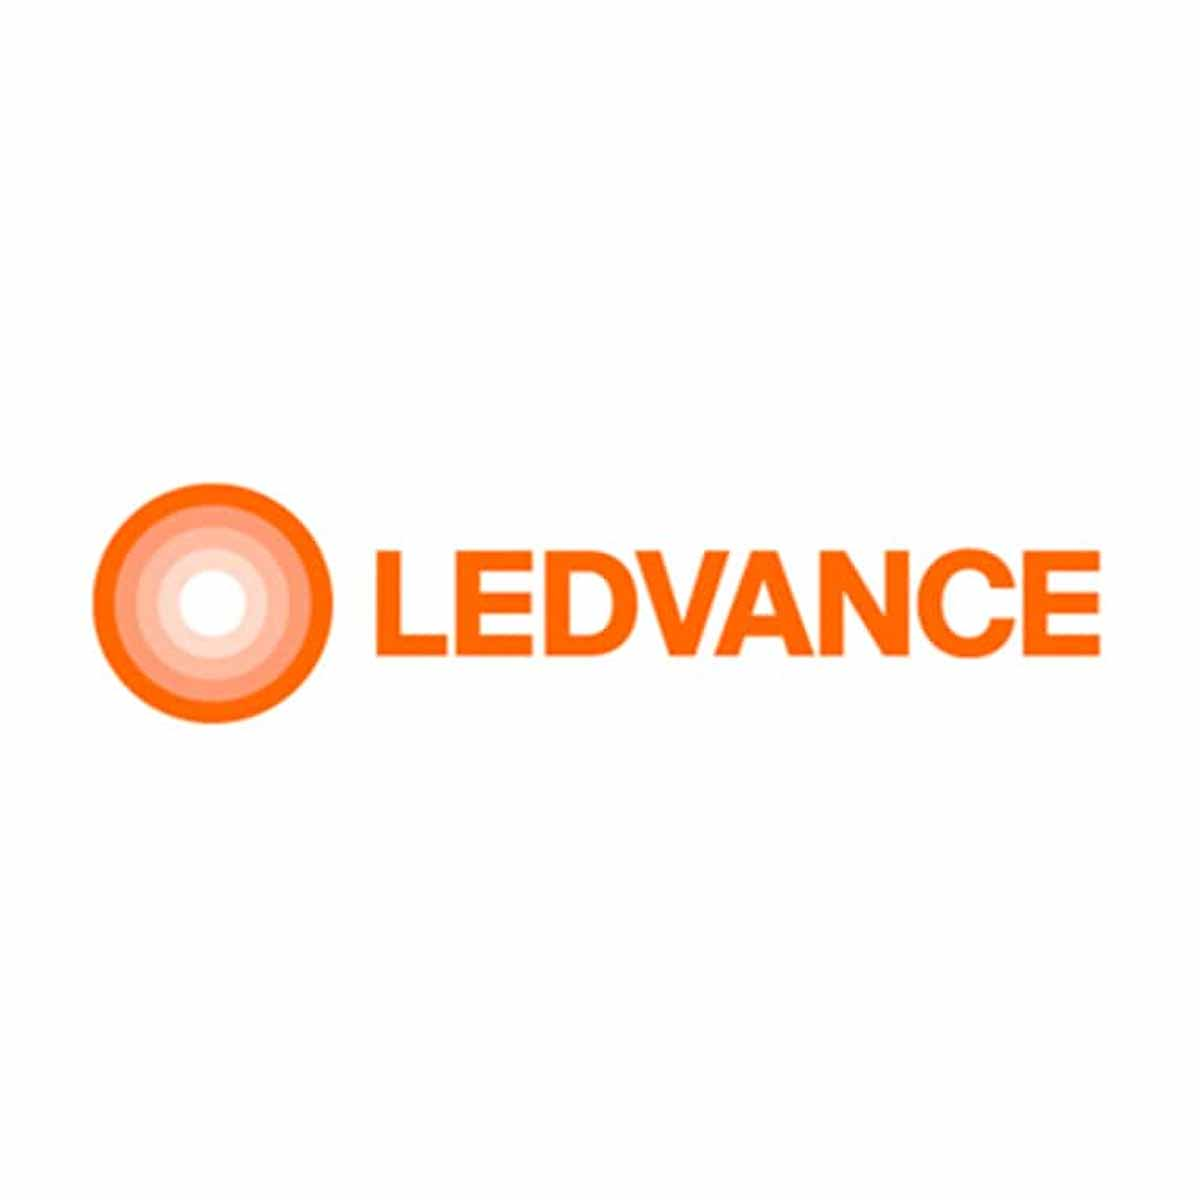 Ledvance Logo from Lighting Store